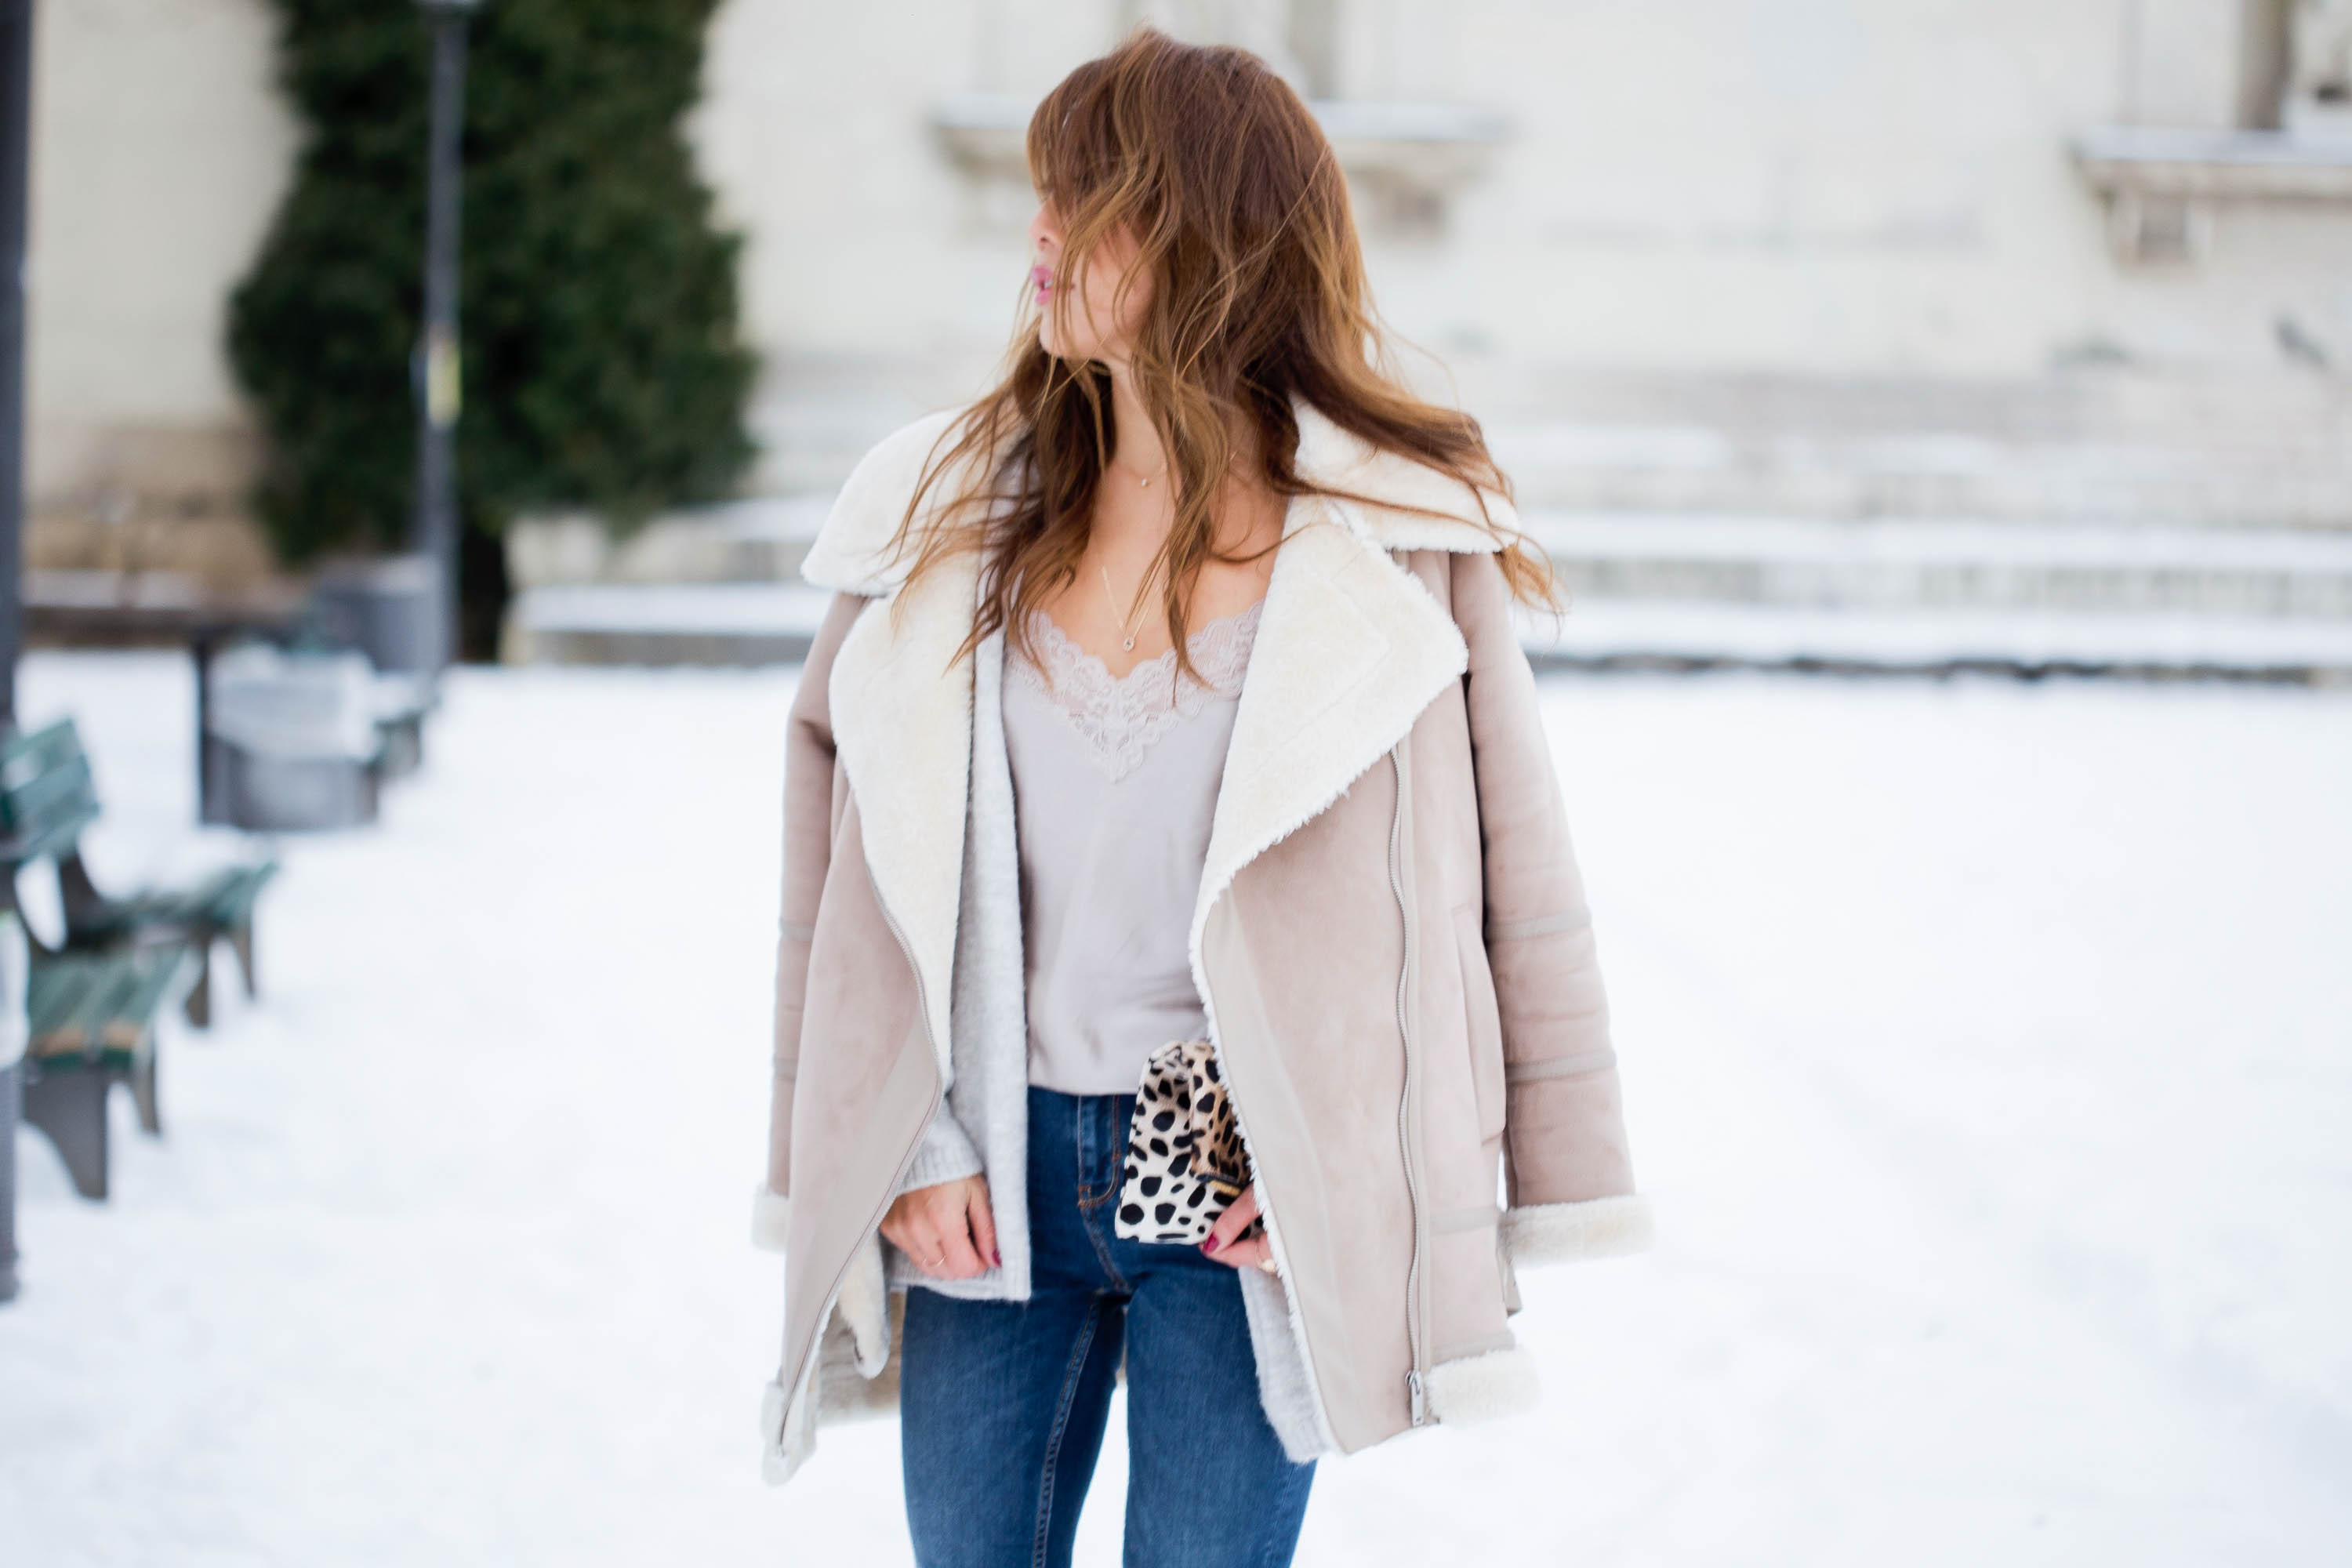 theclassycloud-shearling-jacket-camisole-winter-outfit (6 von 6)